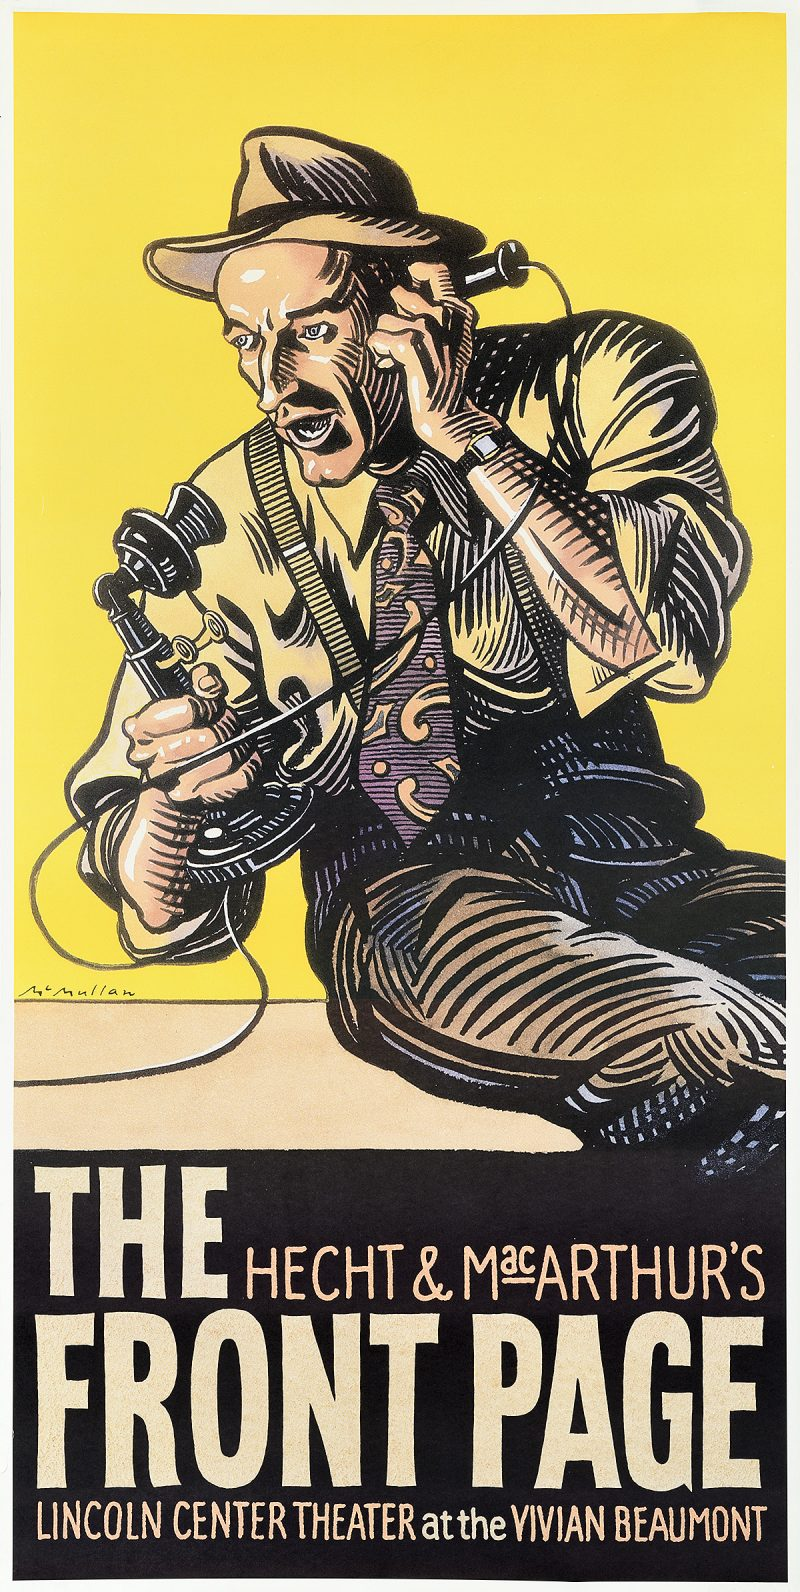 photo offset poster of a man in 1940s attire screaming into a telephone against a yellow background